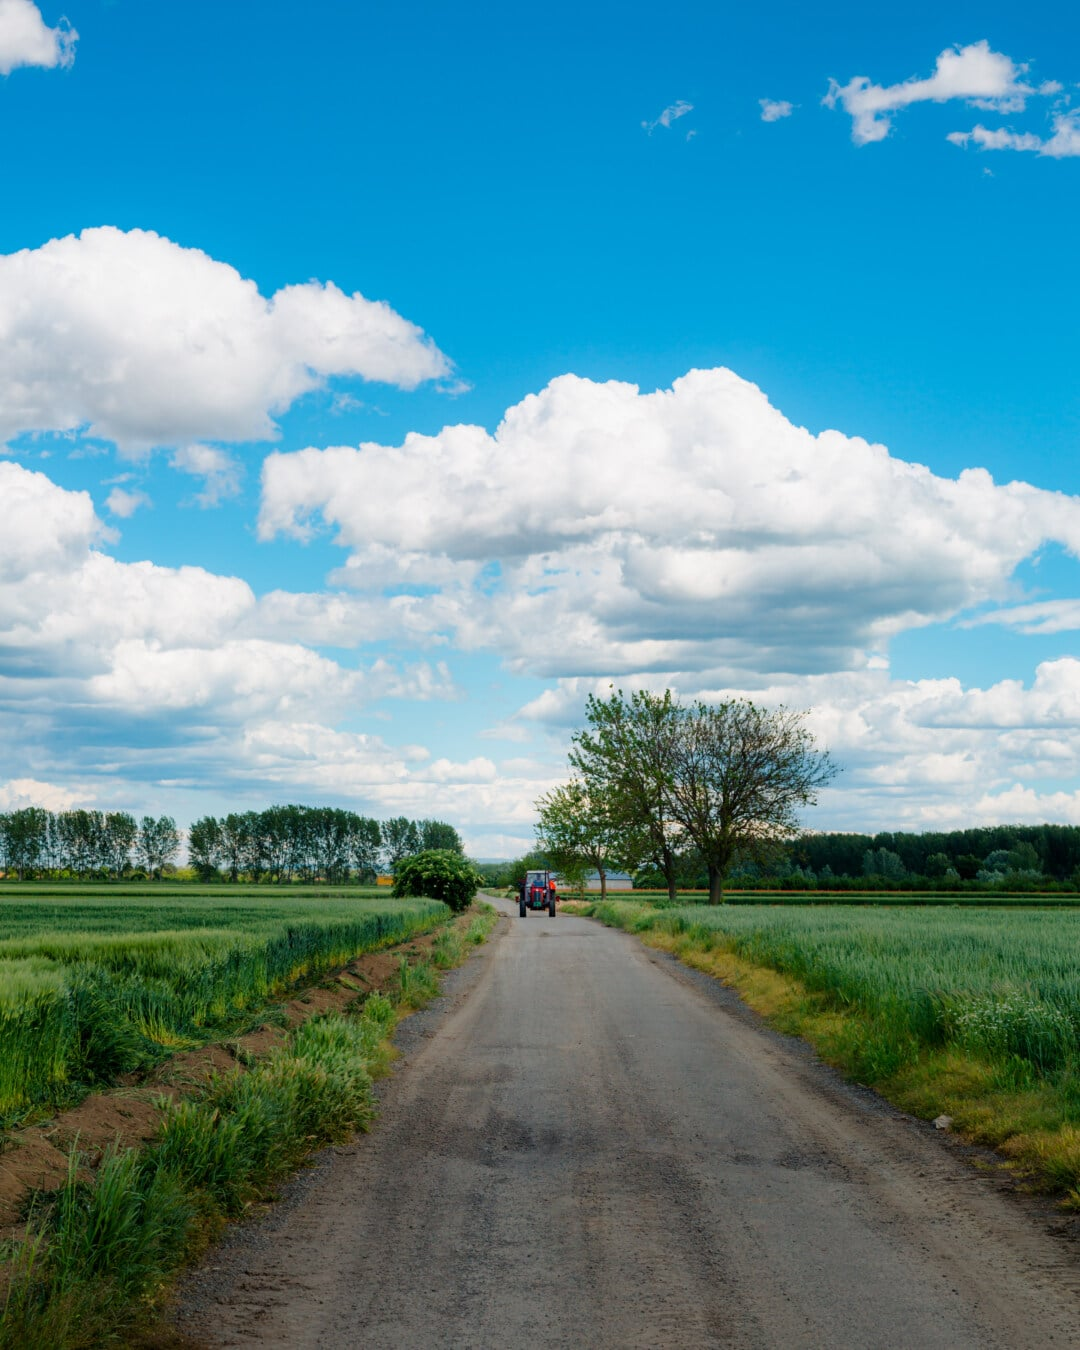 field, agricultural, tractor, vehicle, agriculture, road, rural, atmosphere, grass, nature